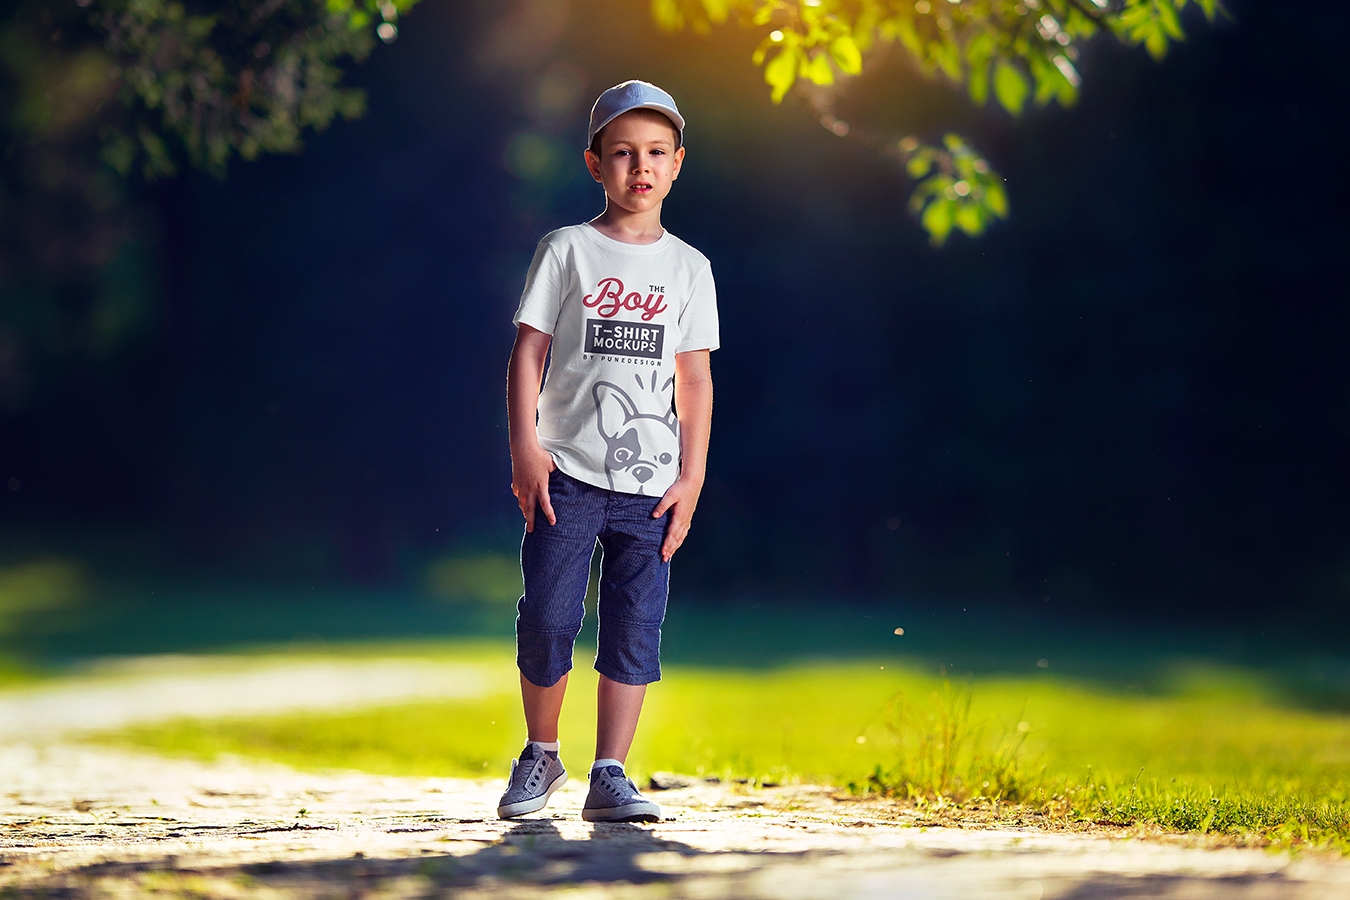 02-Boy-T-Shirt-Mockup-By-PuneDesign